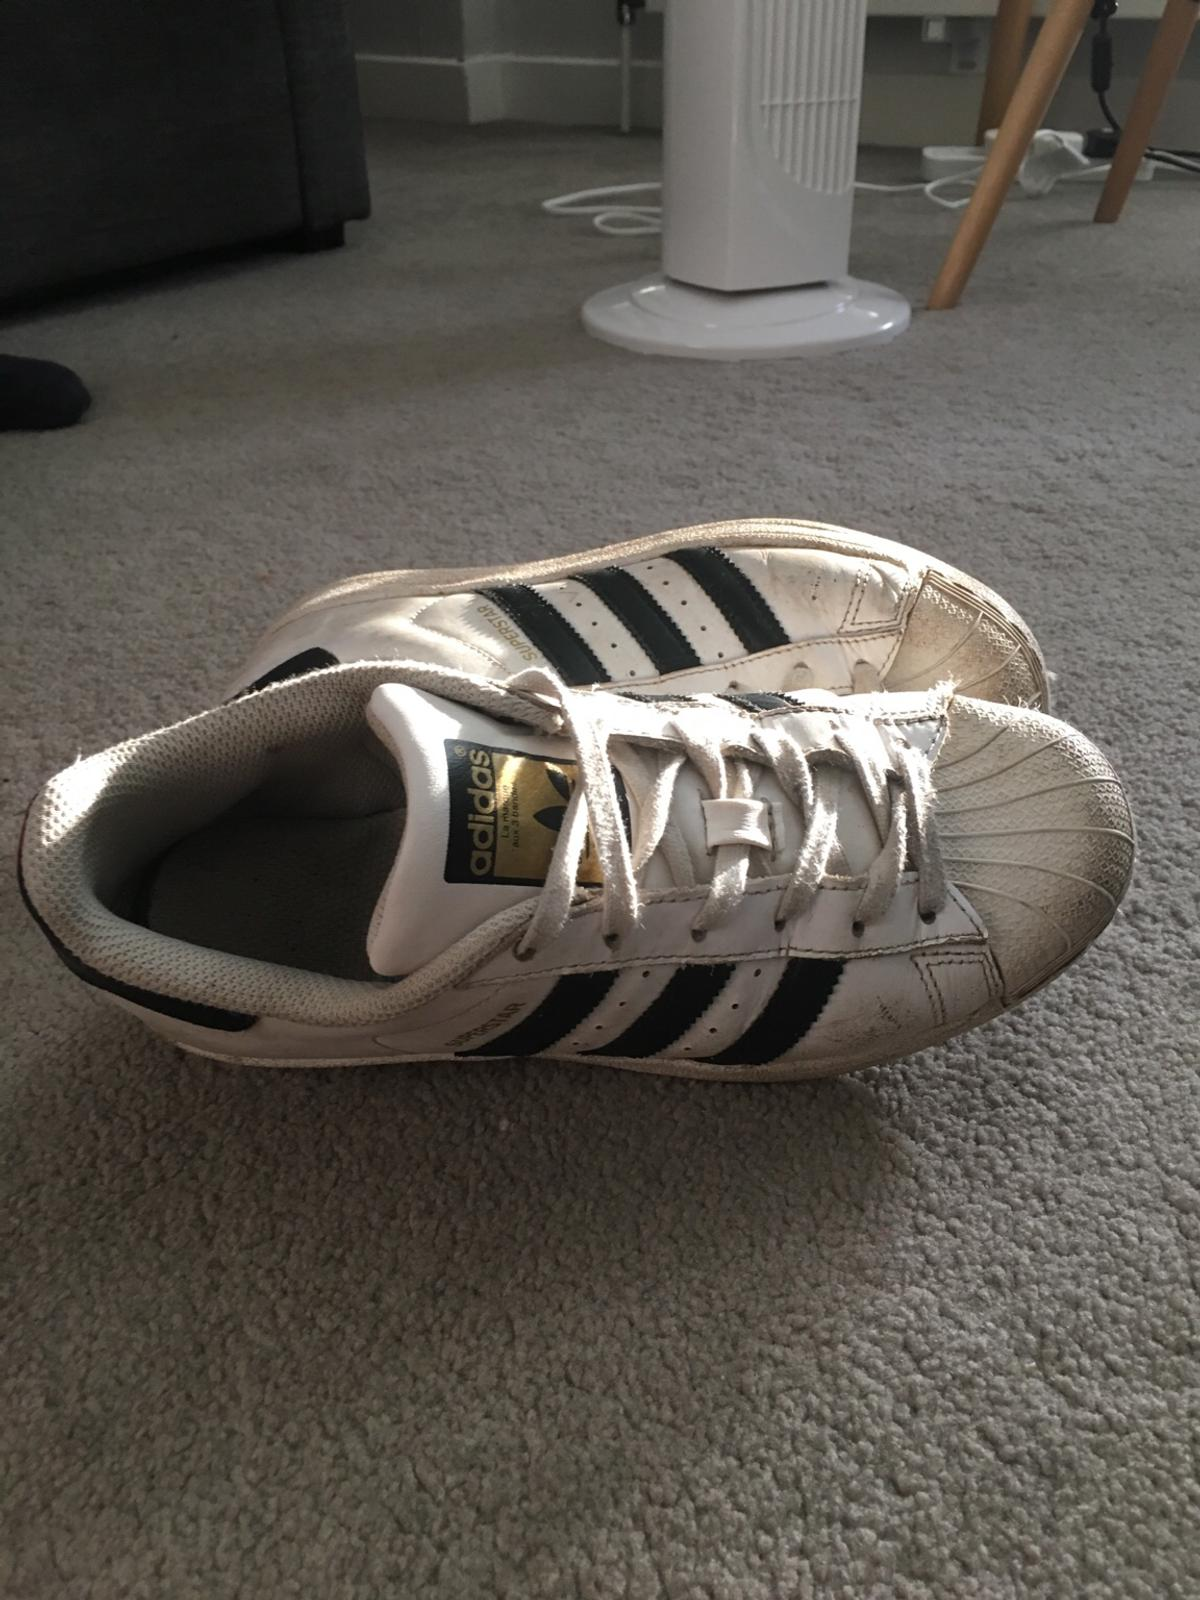 Size UK4 Great condition - white shoe with black stripes. Pay for delivery. Will wash laces before I send. Open to offers